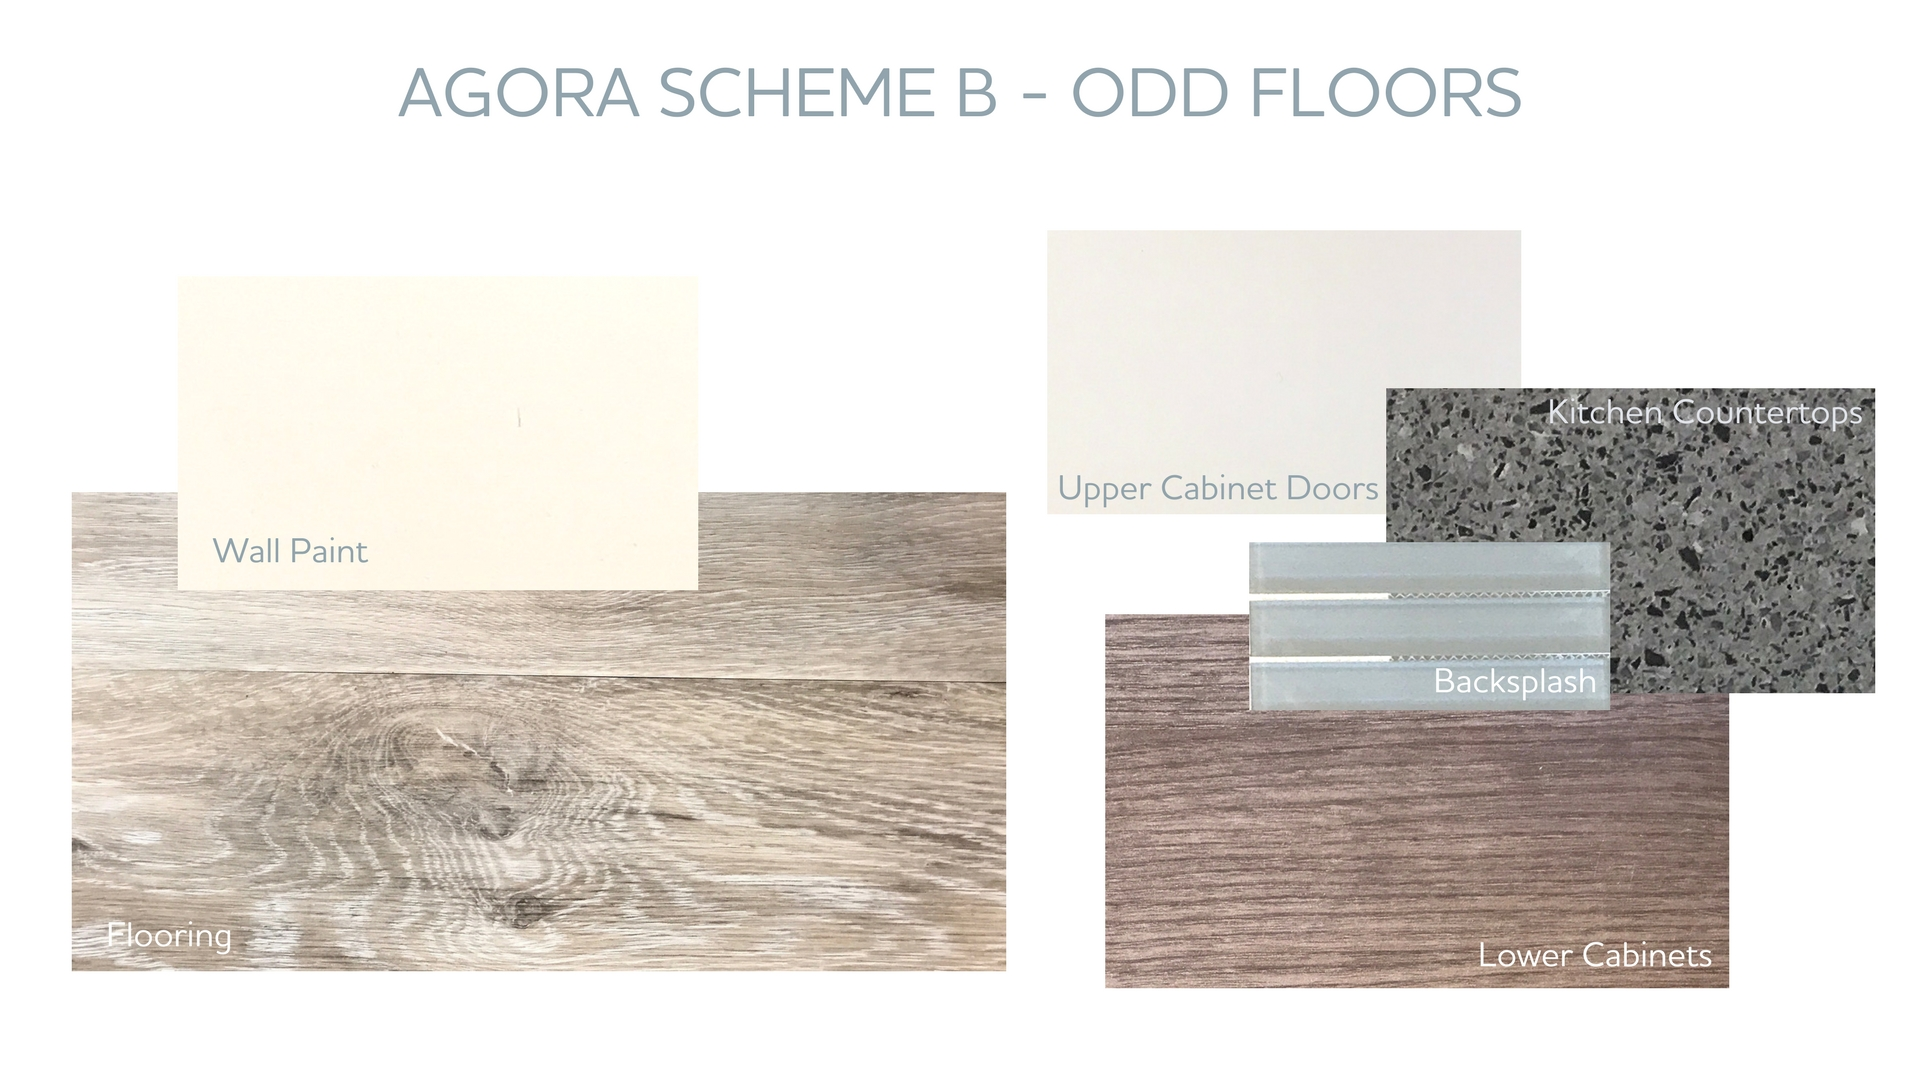 Scheme B Can Be Found On The Odd Numbered Floors At Agora And Features  U201cMaritime Grayu201d Wood Style Flooring, Lower Kitchen Cabinets In U201cFrati  Tortuga Uno ...